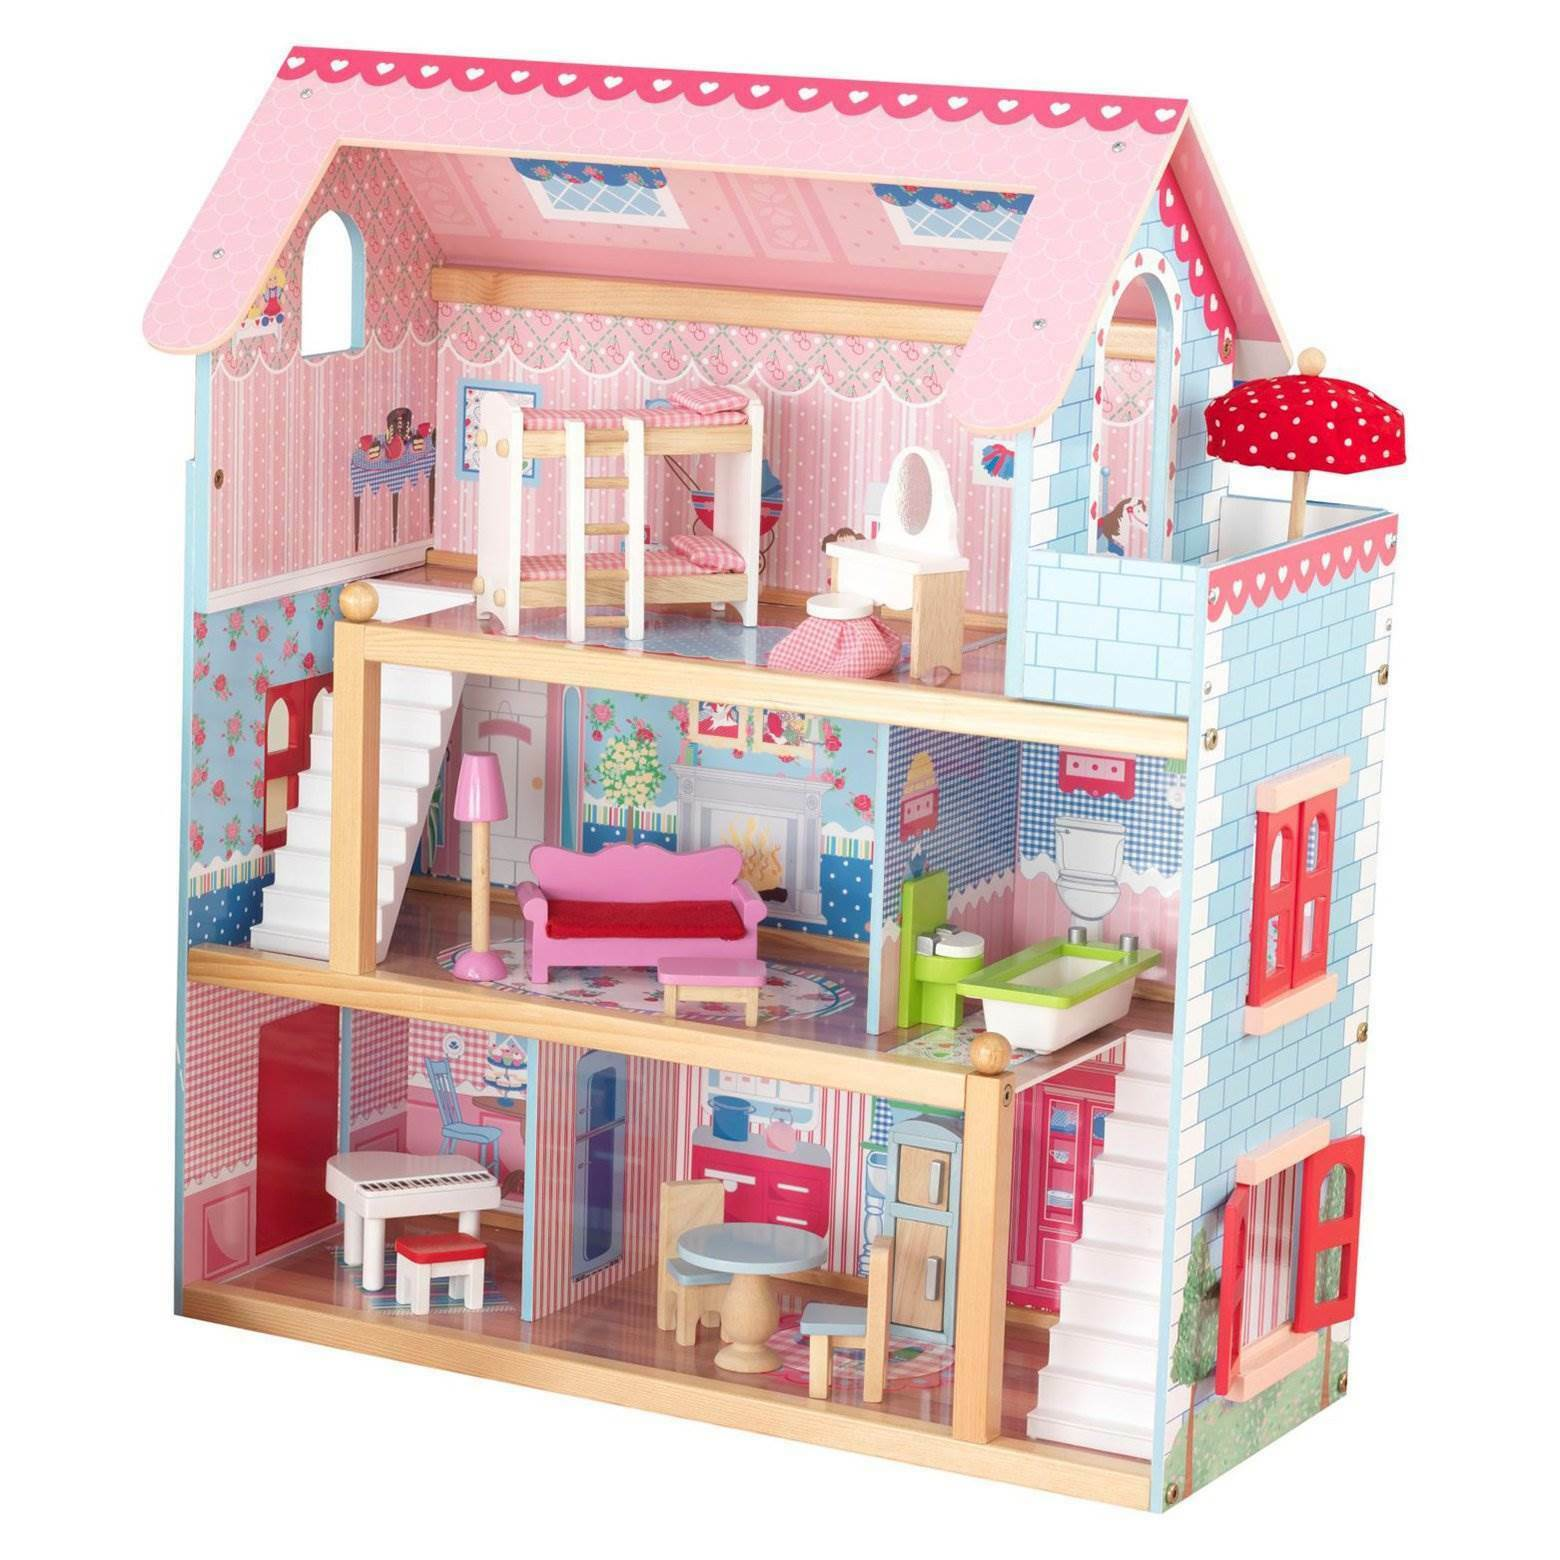 KidKraft Chelsea Wooden Dollhouse Pretend Play House Cottage with Furniture